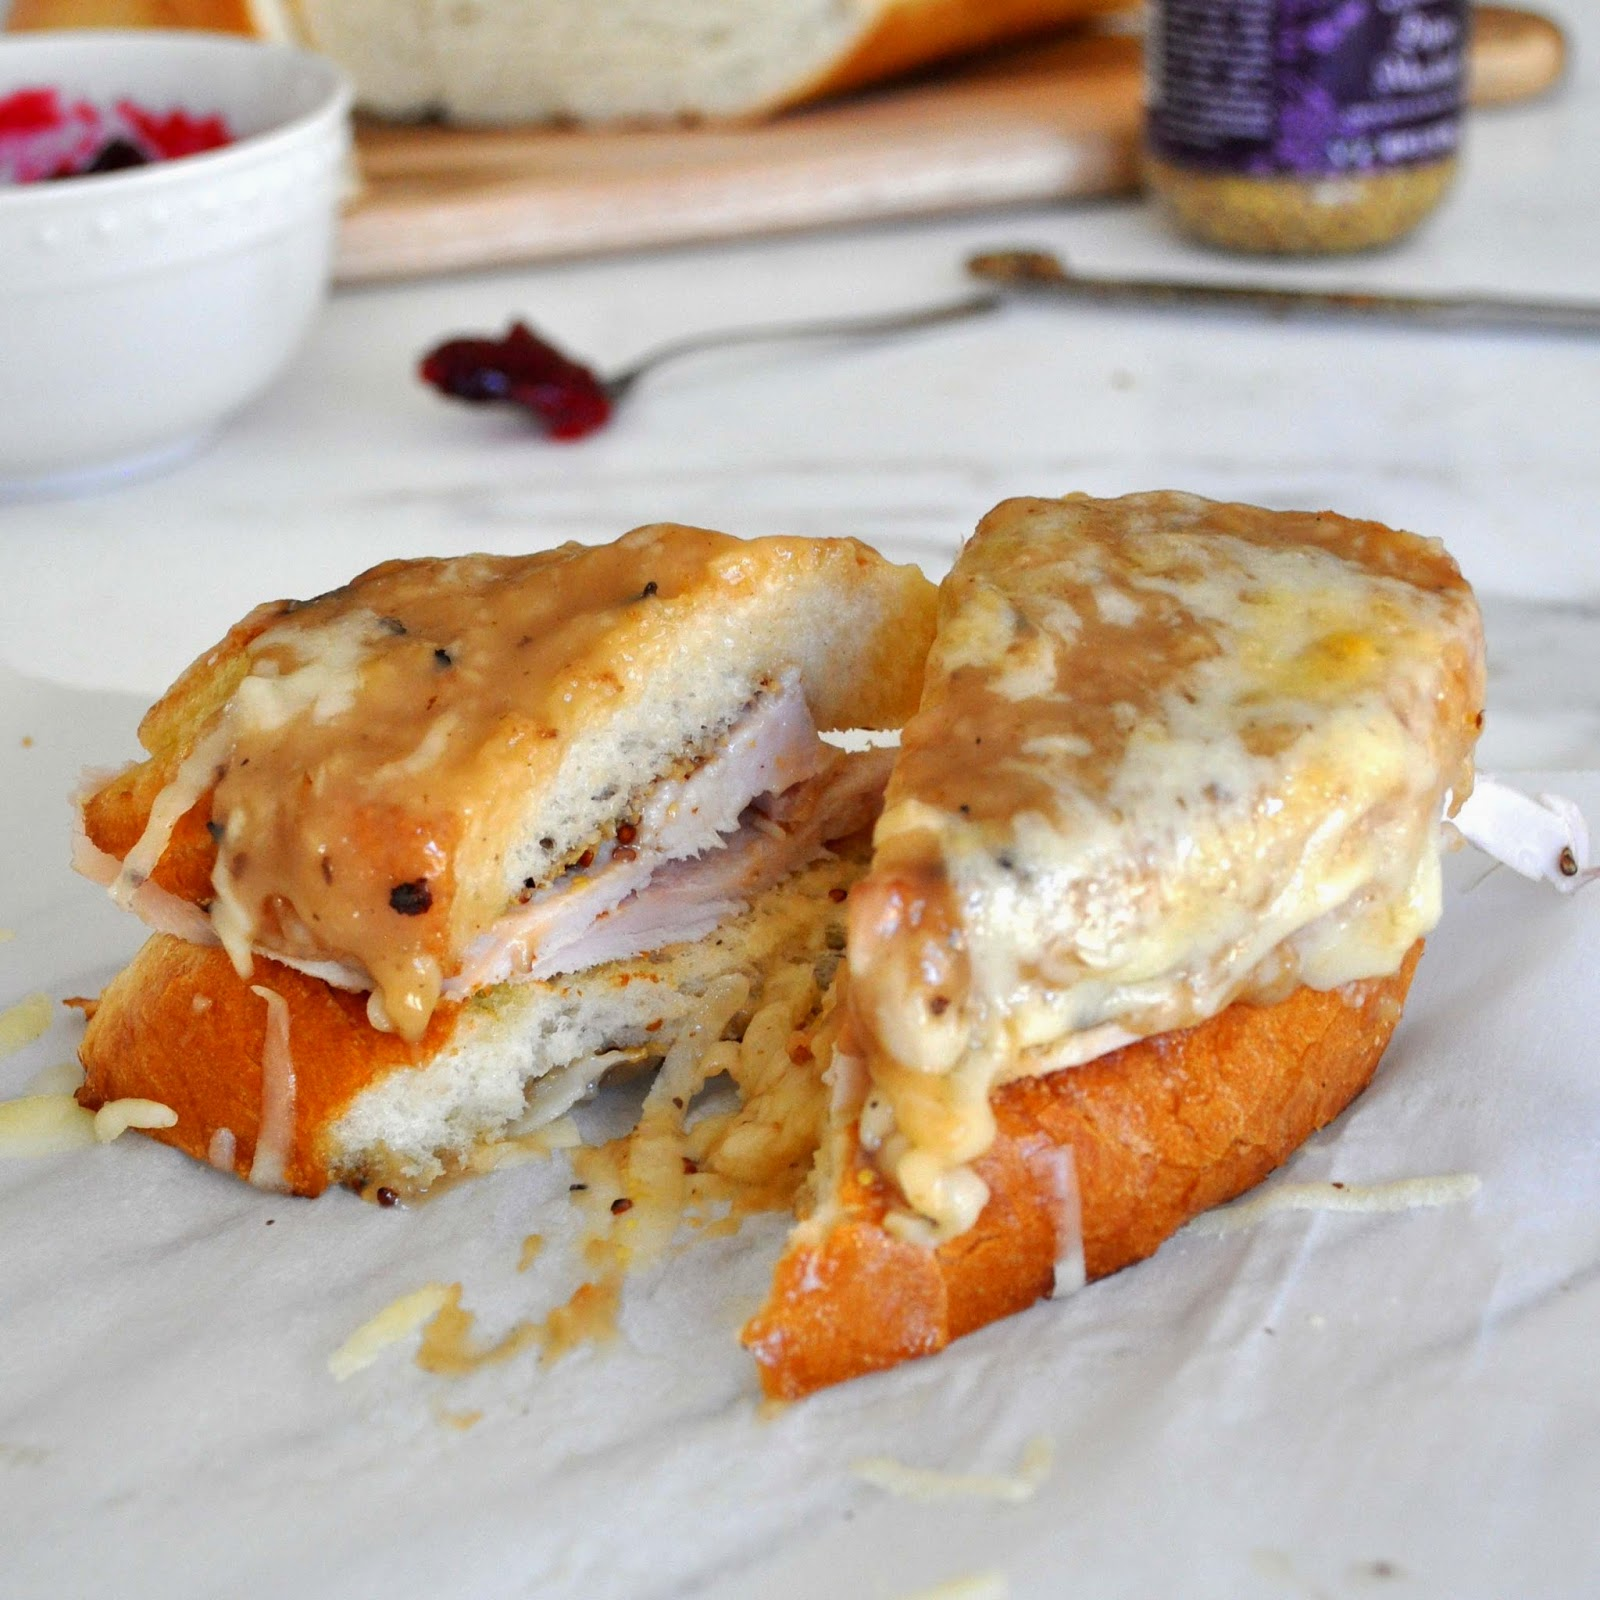 Broiled Turkey, Ham, and Cheese Sandwiches recommend